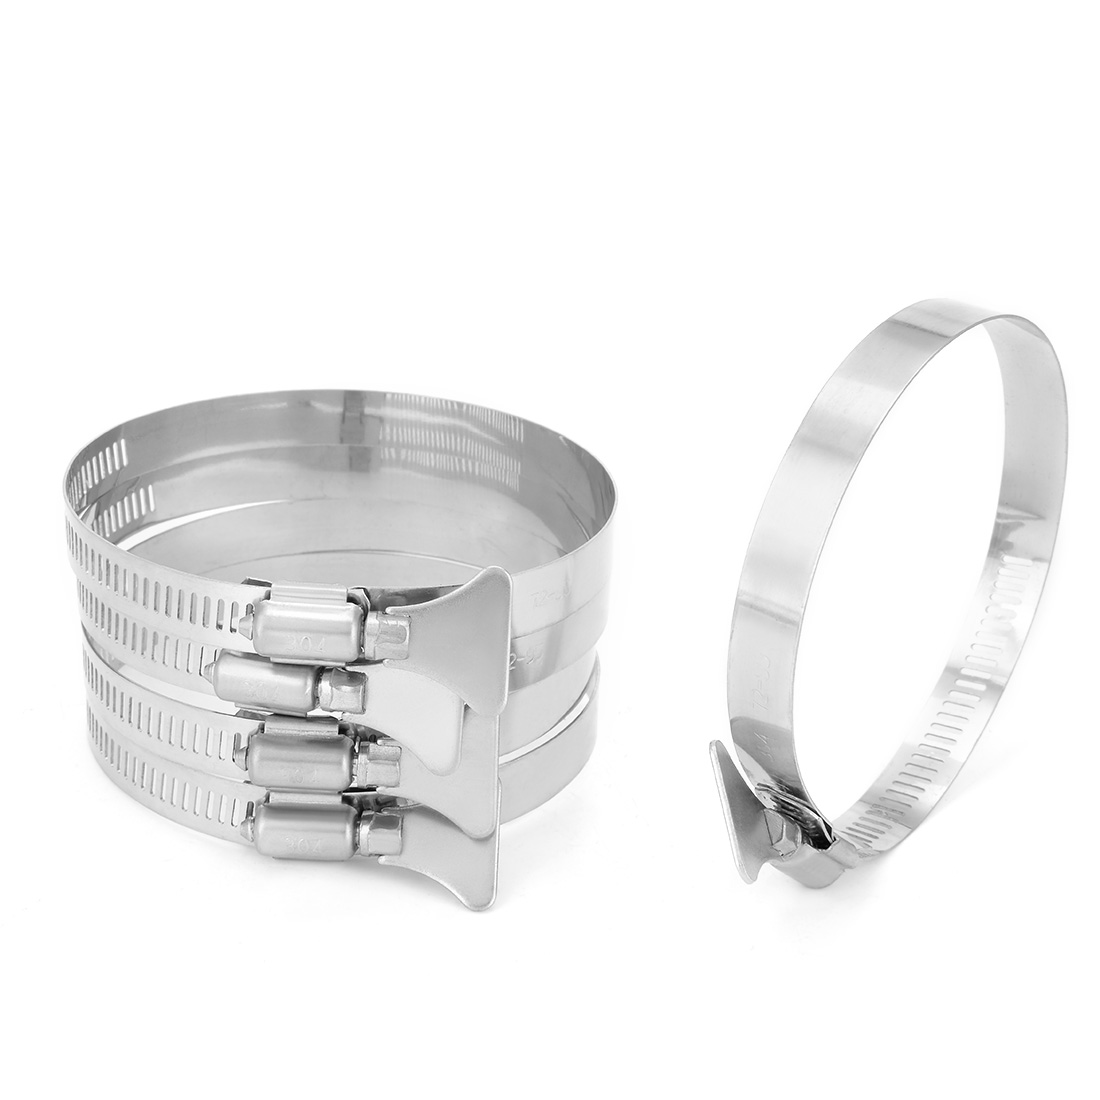 72mm-95mm Clamping Range 304 Stainless Steel Butterfly Hose Clamp 5pcs